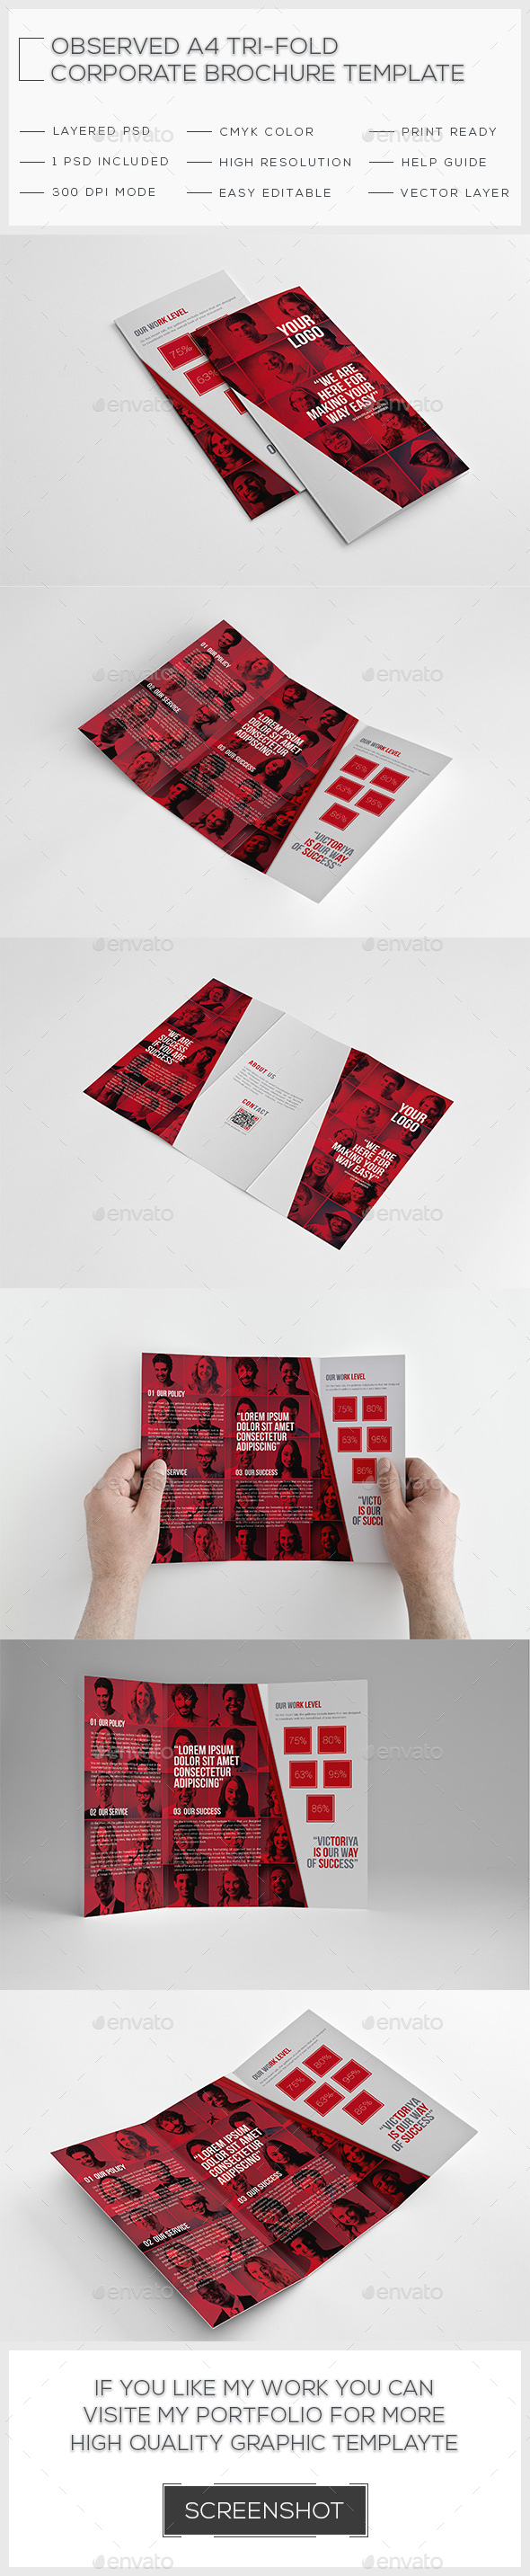 Observed Corporate Trifold Brochure Template - Brochures Print Templates